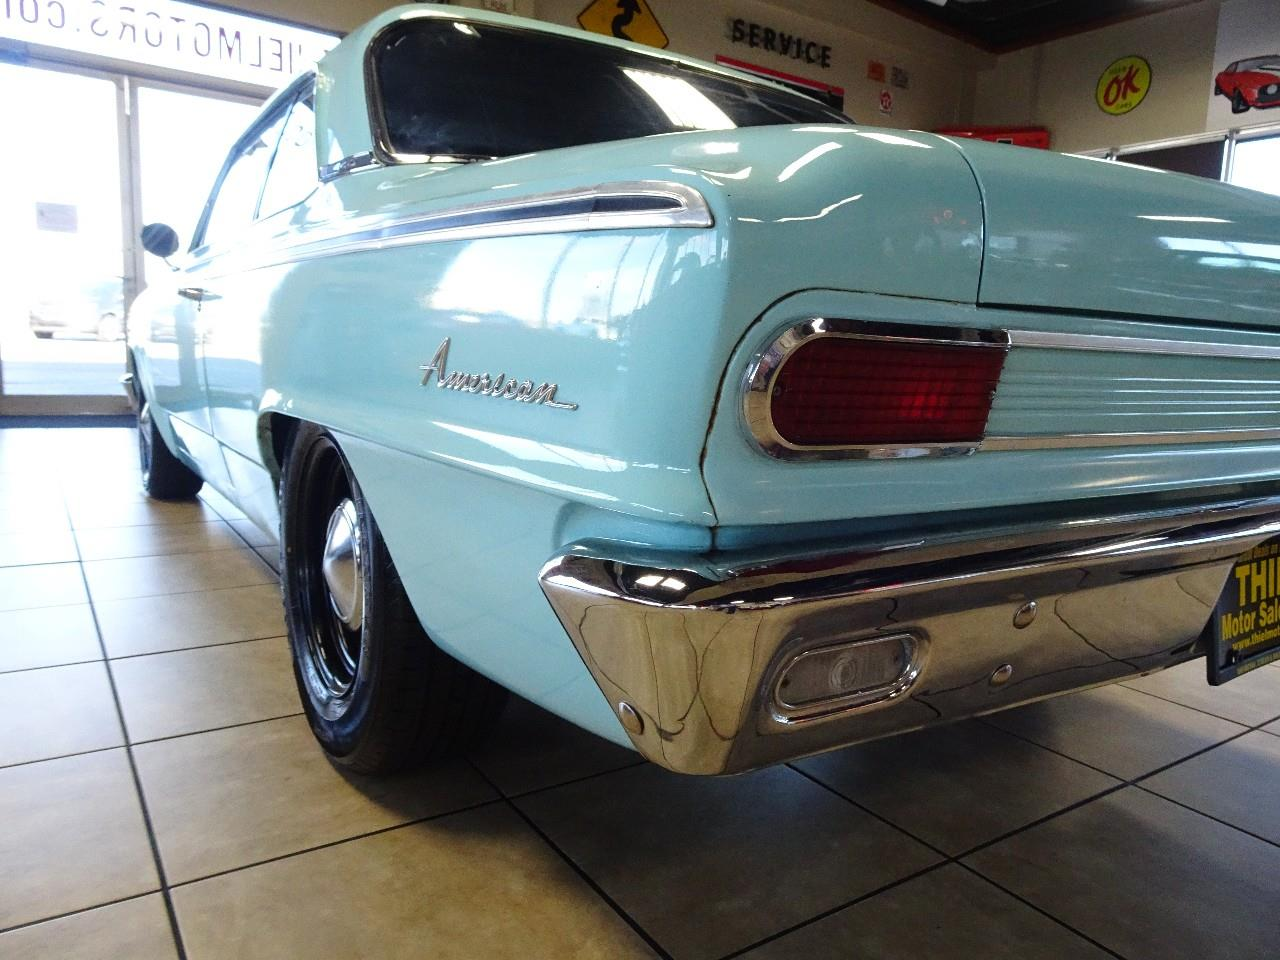 Large Picture of 1965 Rambler American located in De Witt Iowa Offered by Thiel Motor Sales Inc. - P3YN